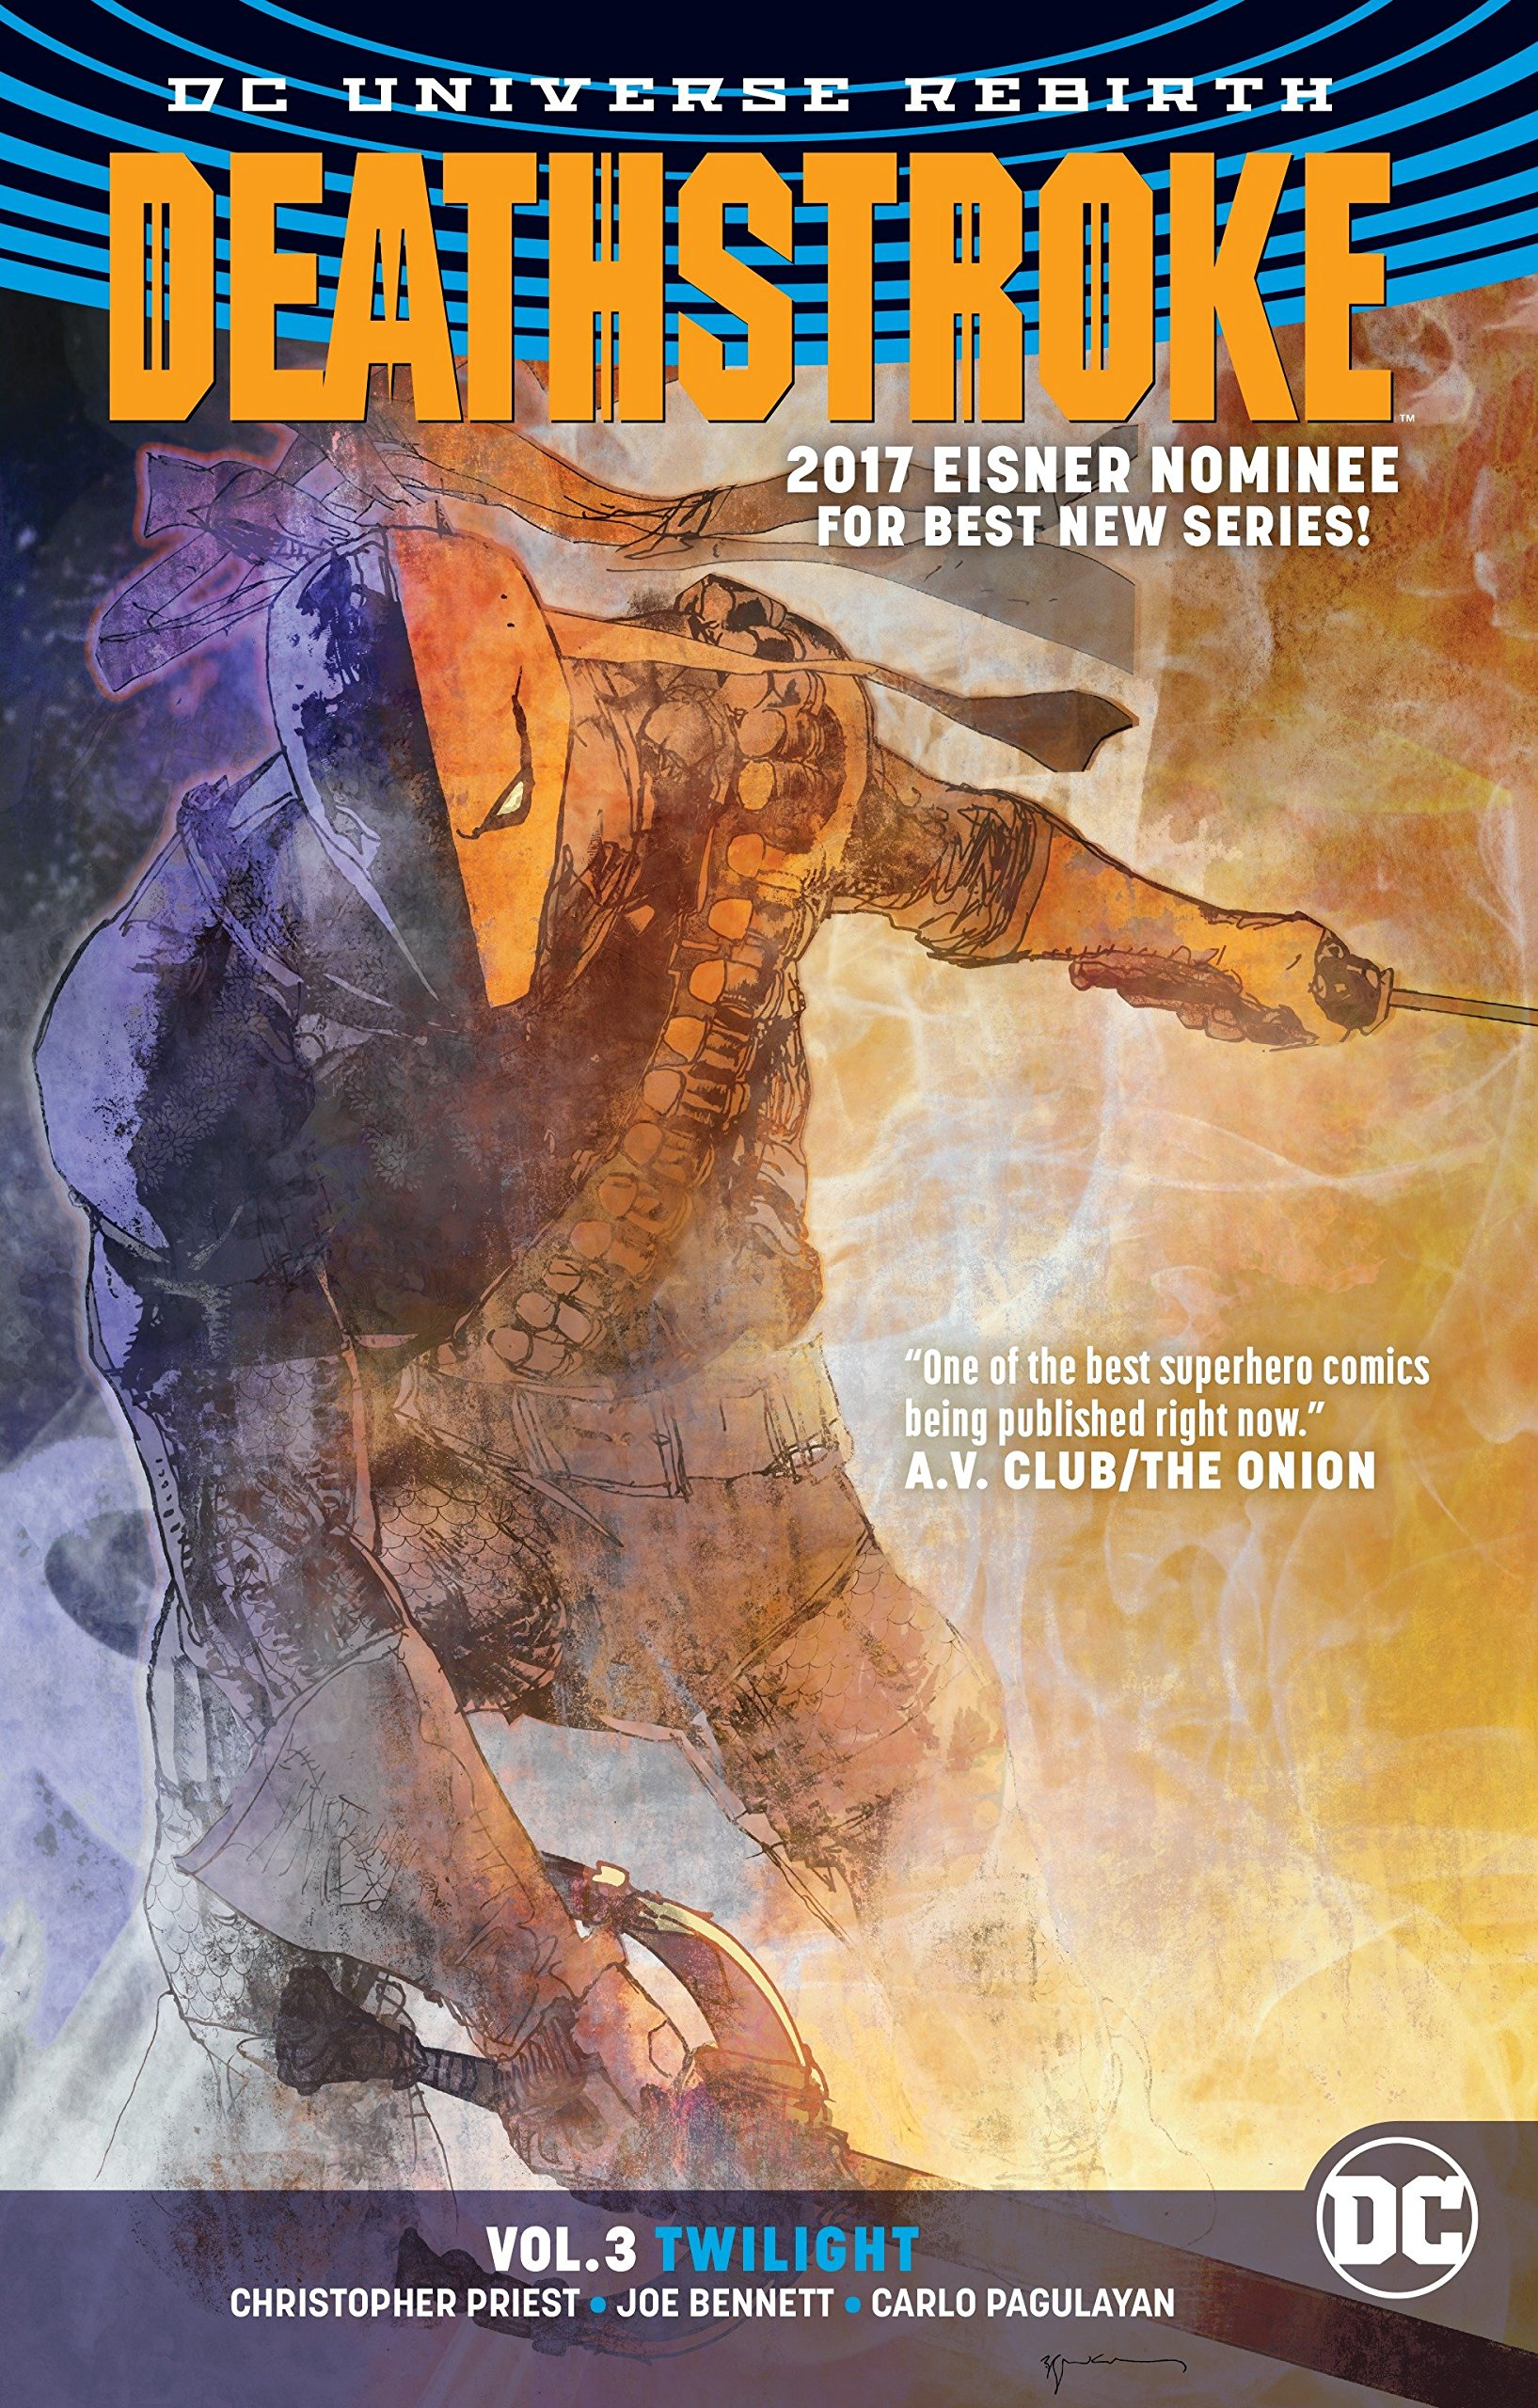 DEATHSTROKE VOLUME 3 TWILIGHT GRAPHIC NOVEL Paperback Collects 12-18 2016